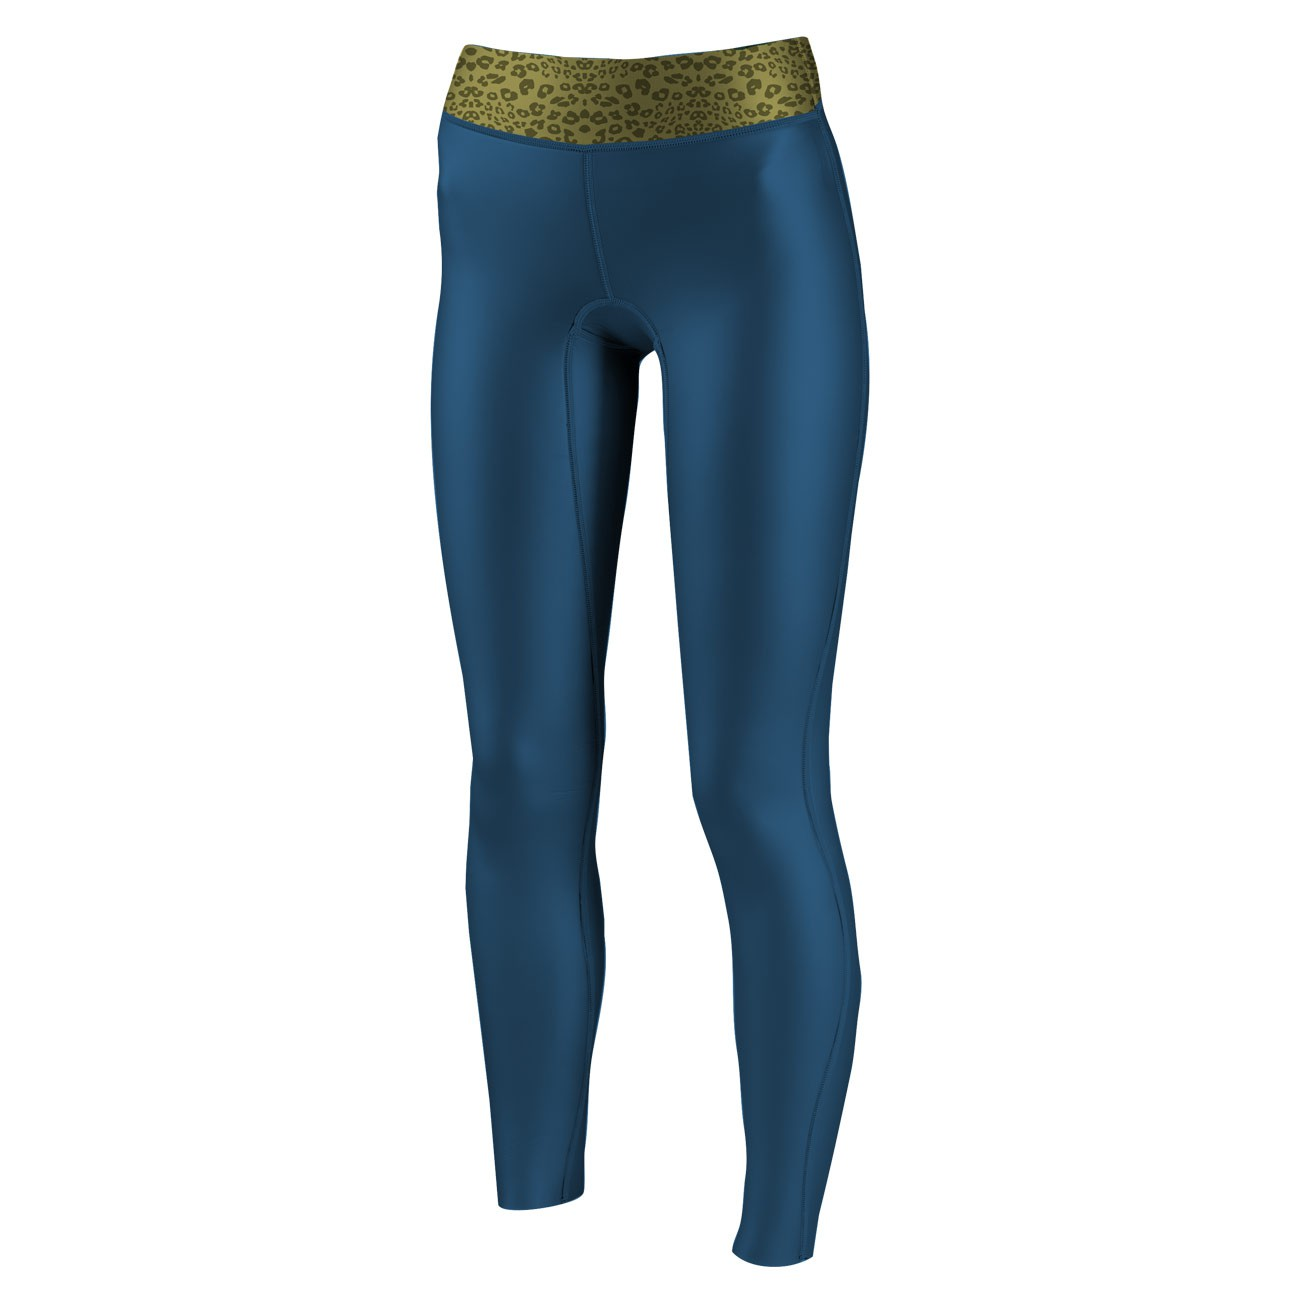 Neoprén O'Neill Wms O'riginal Fl Leggings deep sea/gold